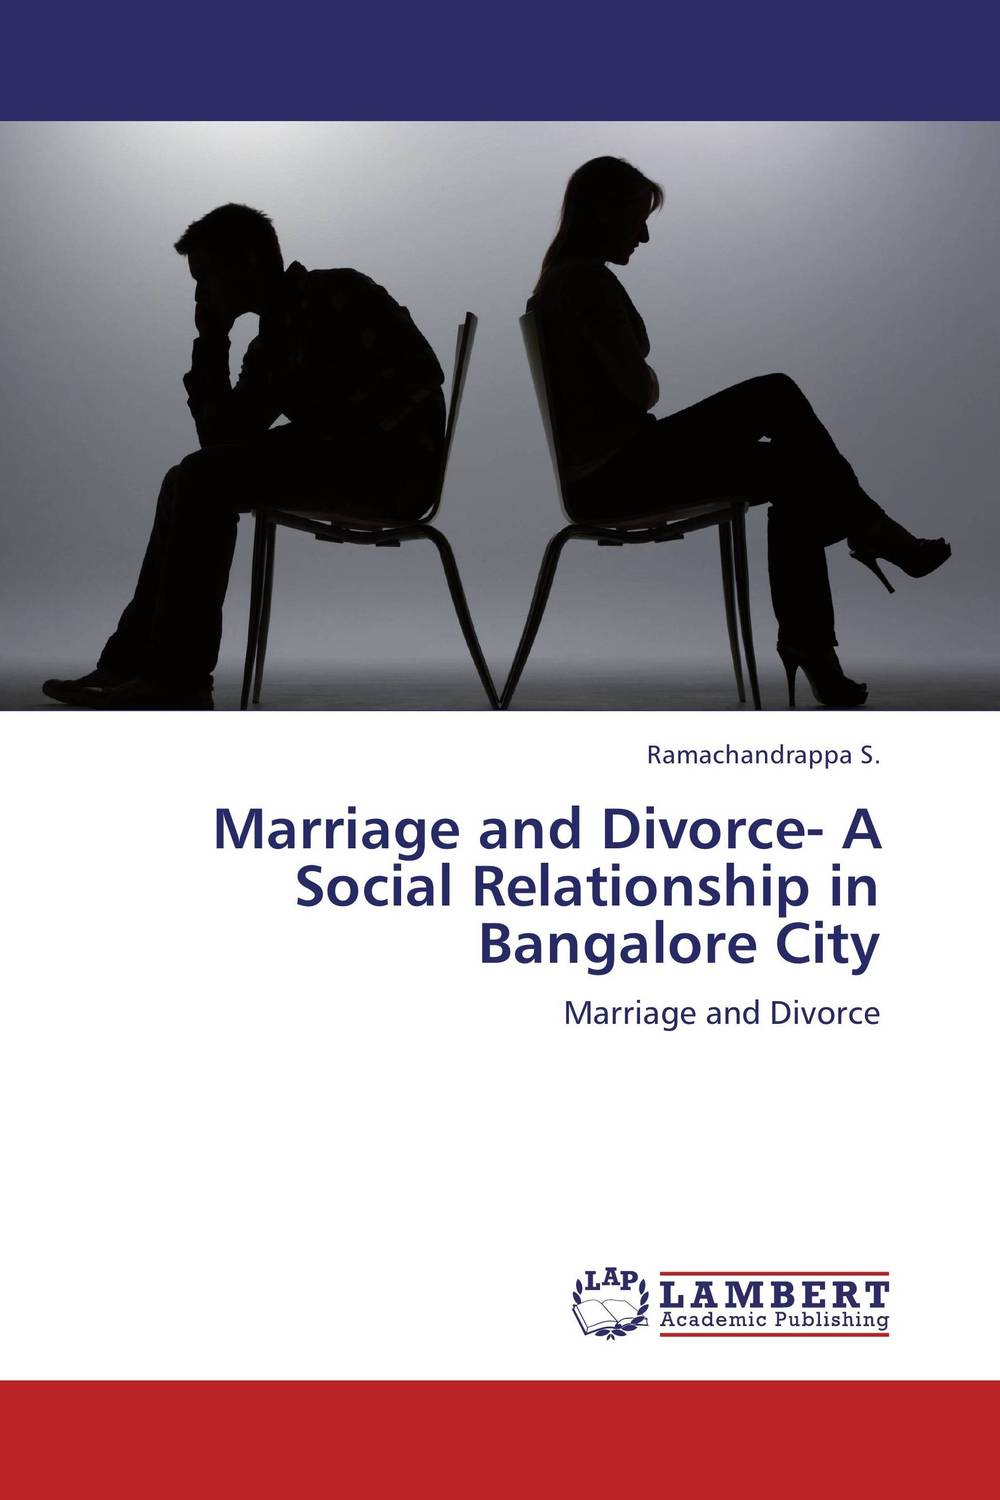 Marriage and Divorce- A Social Relationship in Bangalore City robert e kleeman the handbook for divorce valuations